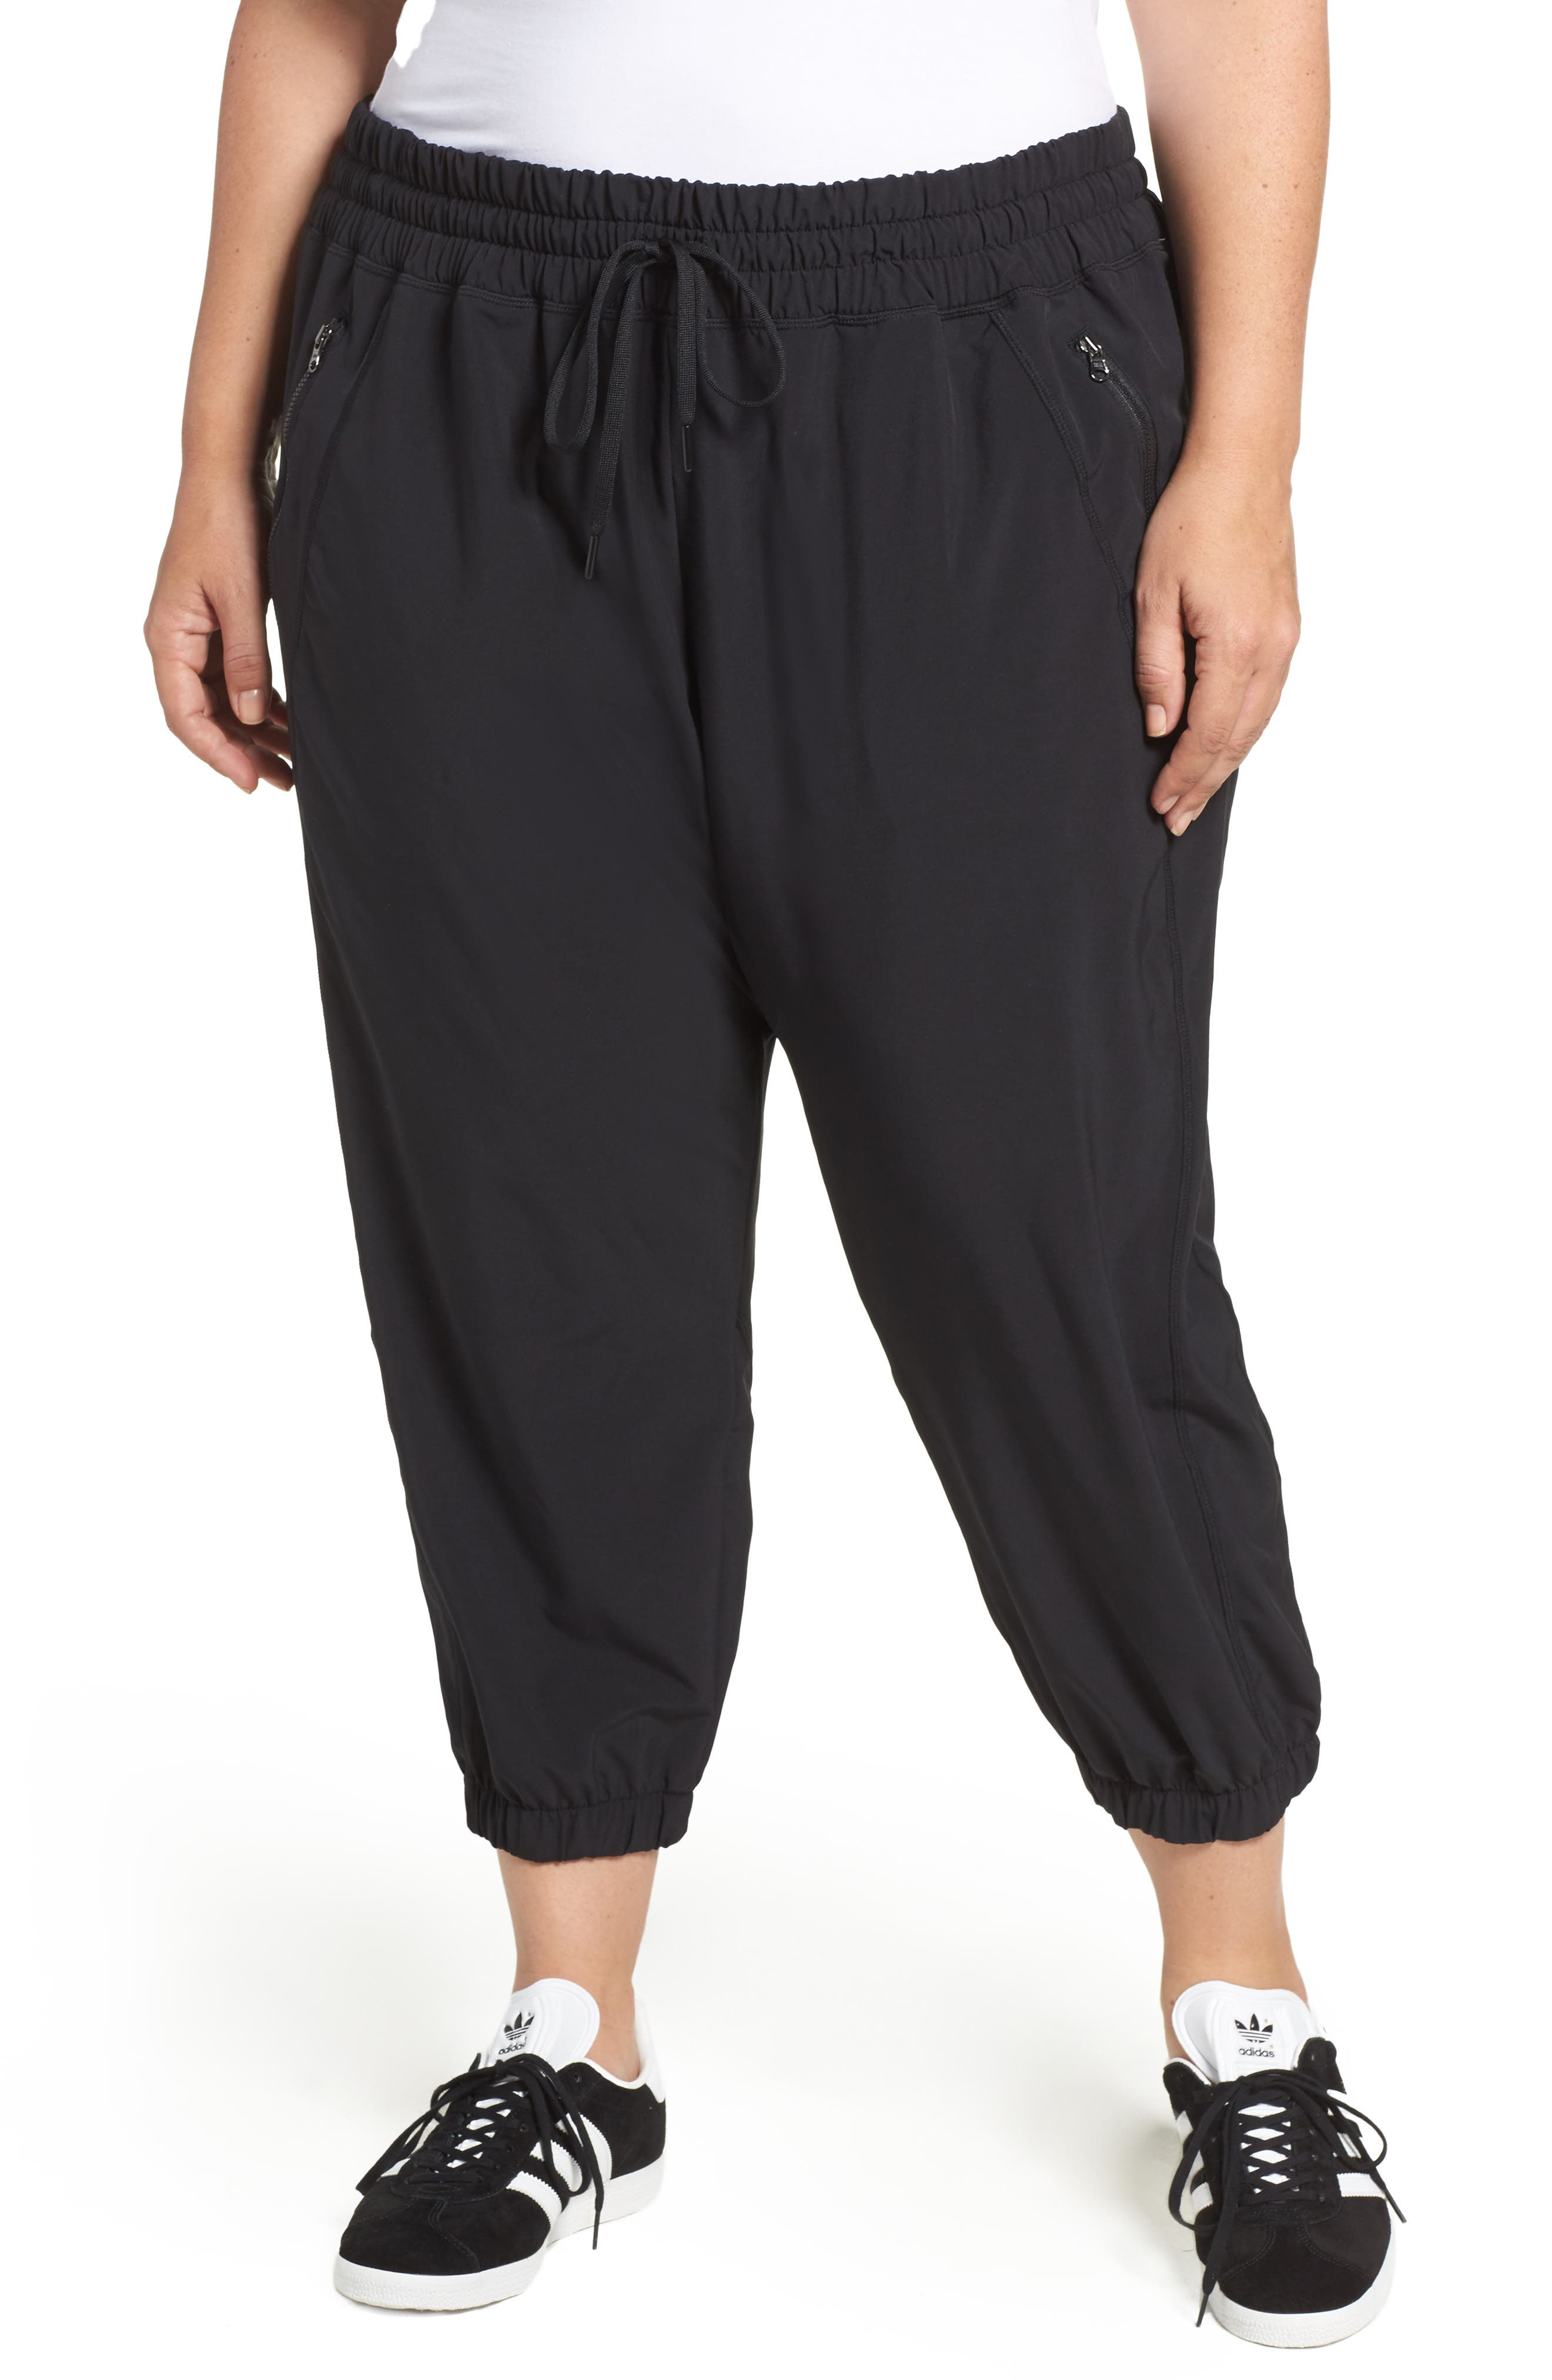 Alternate Image 1 Selected - Zella Out & About Crop Jogger Pants (Plus Size)